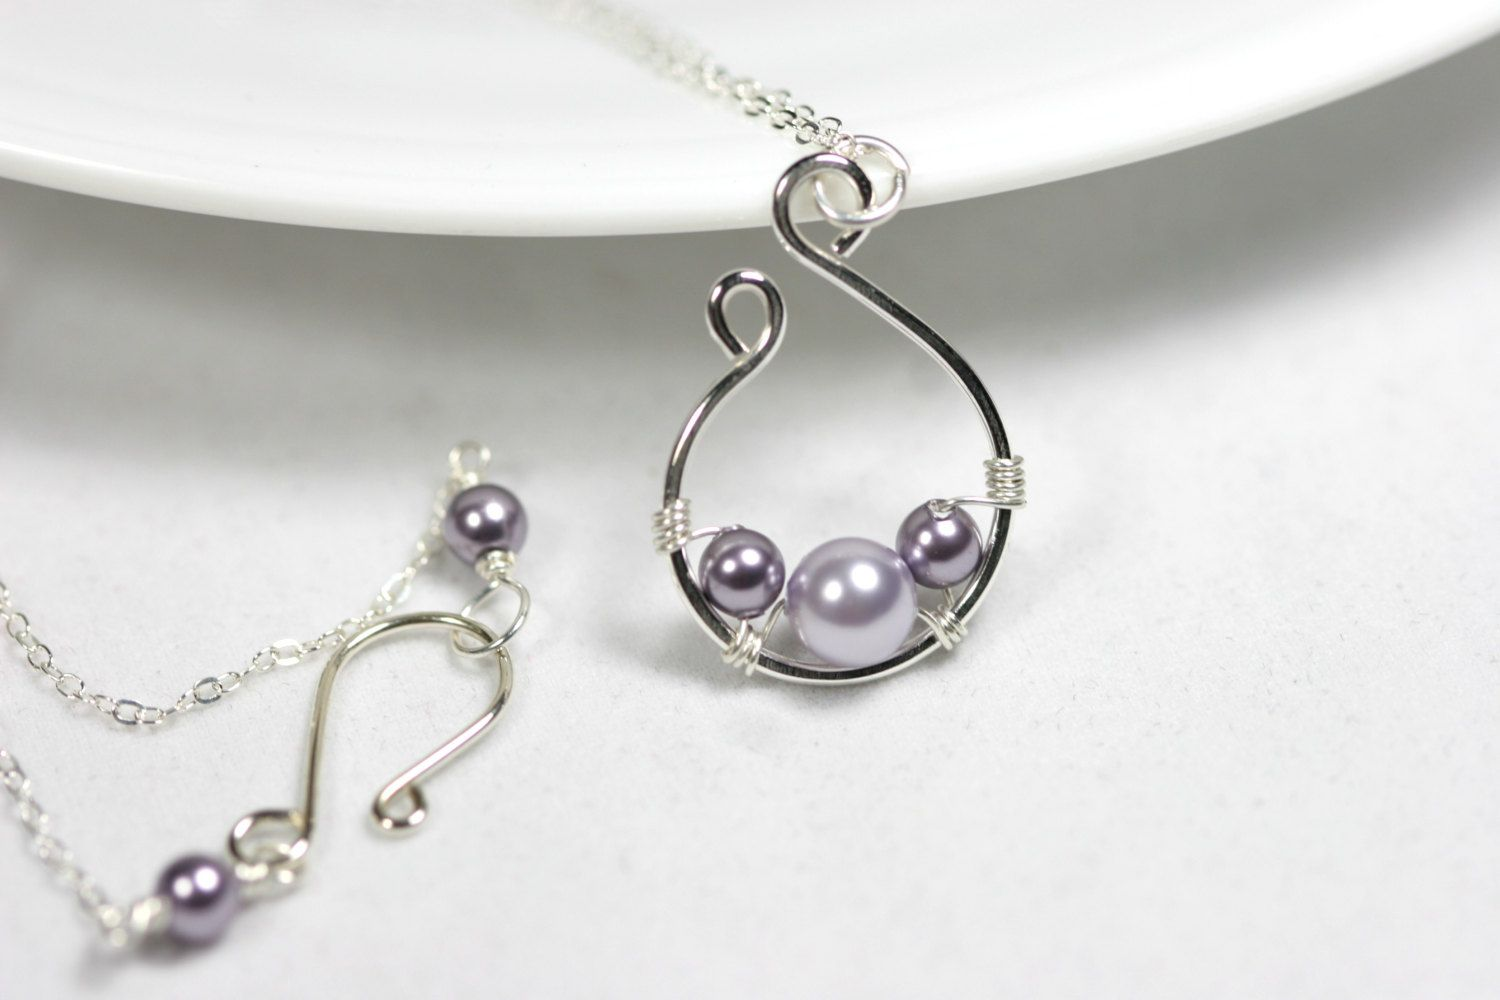 Lavender Pearl Necklace Wire Wrapped Jewelry | Jewelry Ideas ...